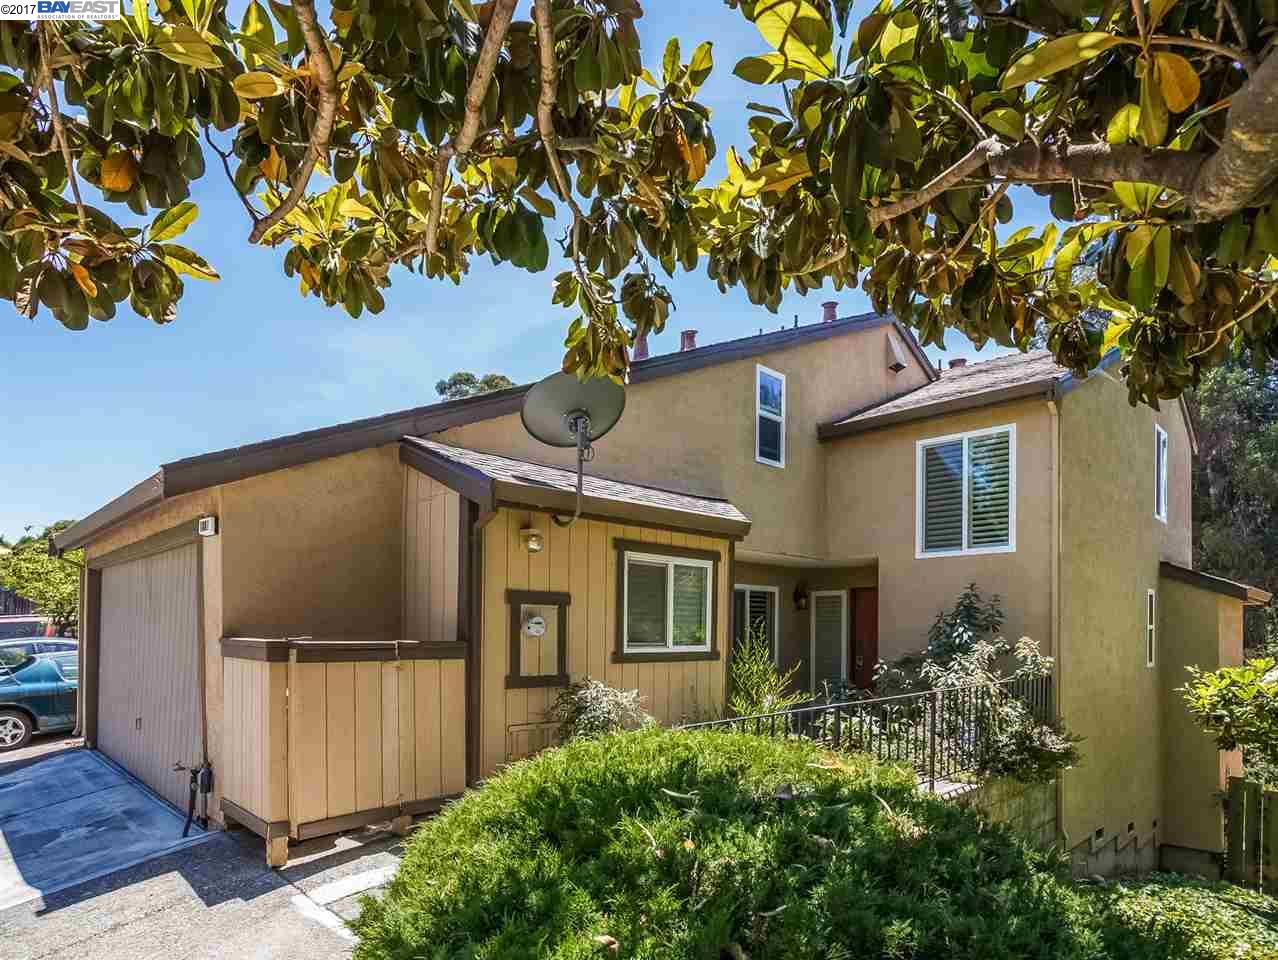 Additional photo for property listing at 1881 Chantilly Lane  Hayward, Kalifornien 94541 Vereinigte Staaten